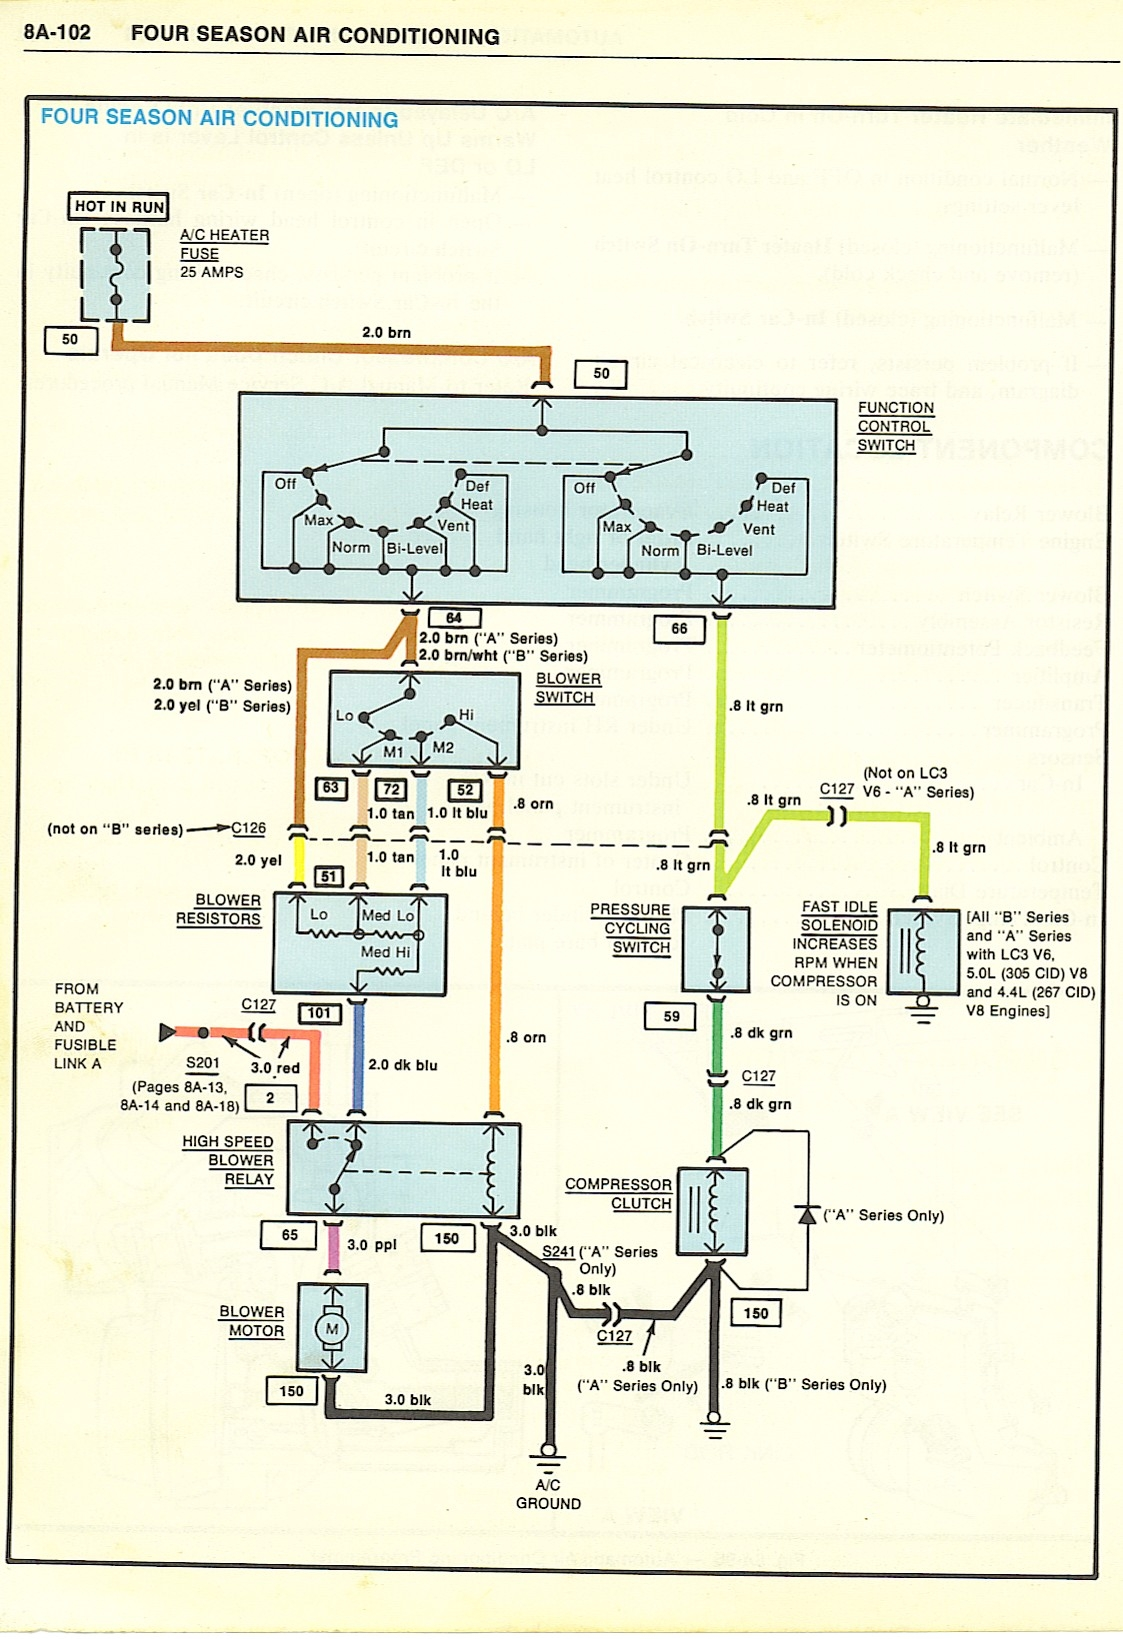 1968 FourSeasonAirConditioner chevy diagrams powerwizard 1 0 wiring diagram at readyjetset.co